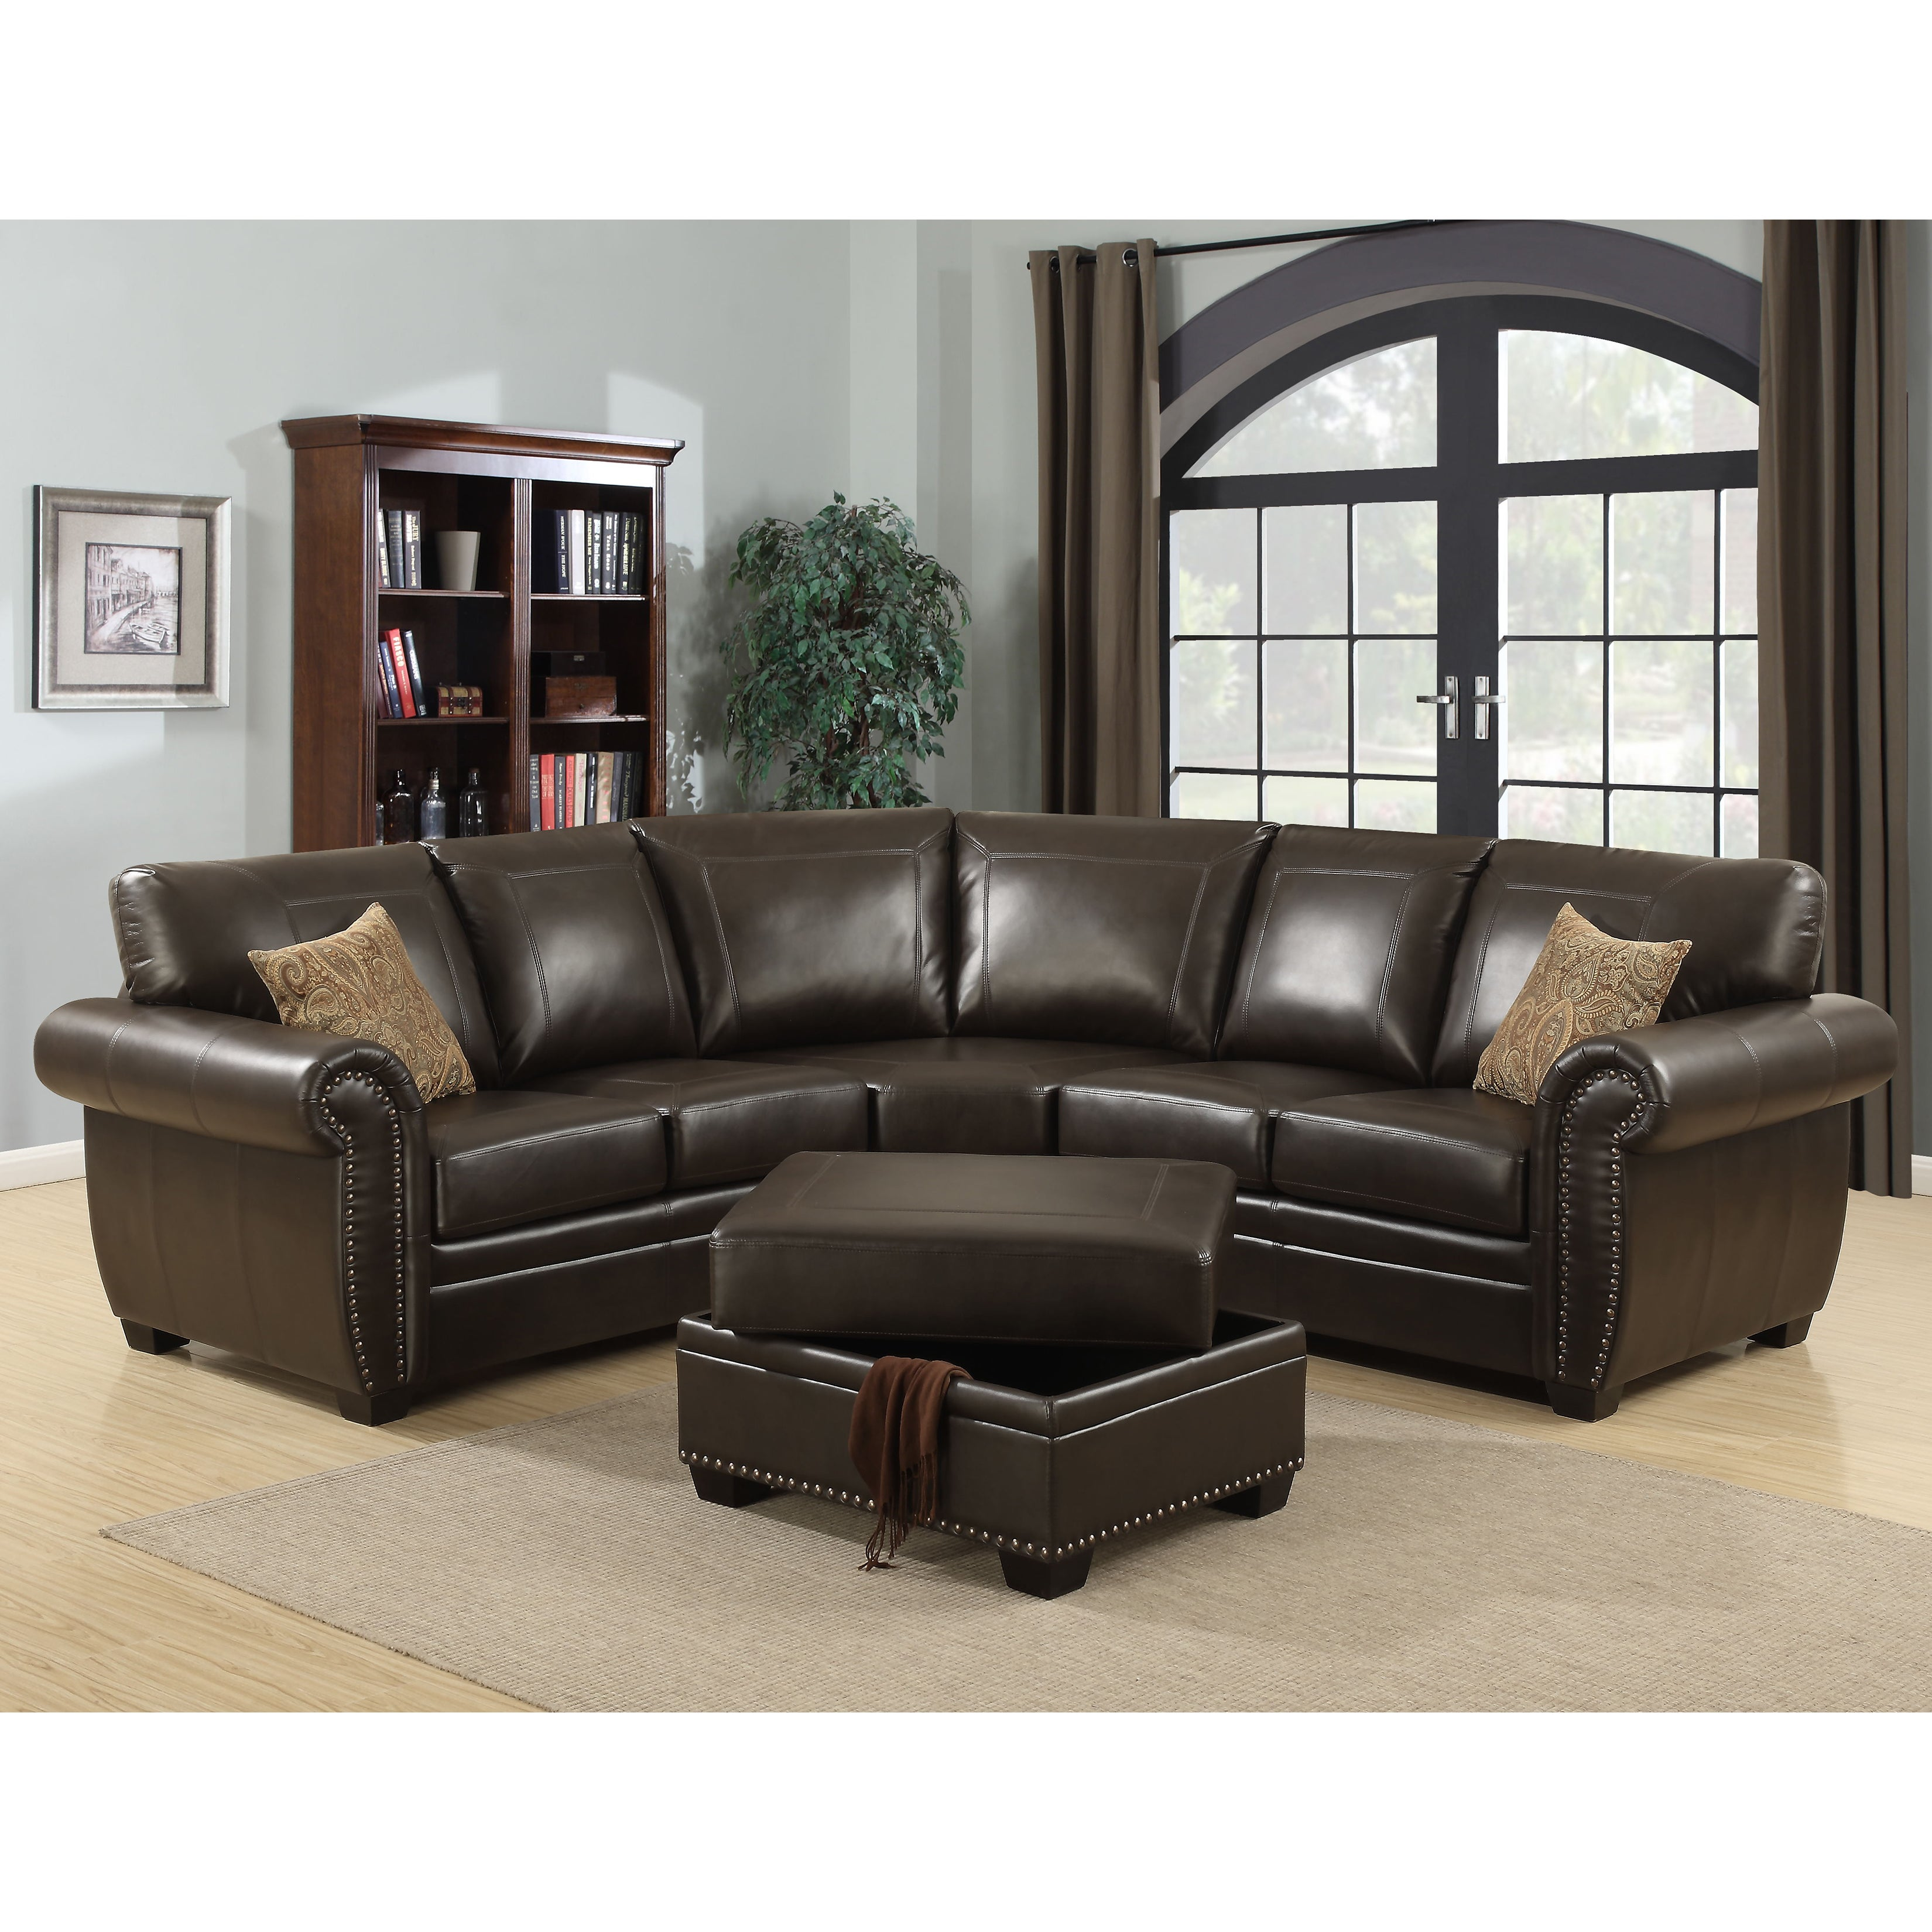 Incredible Ac Pacific Louis 3 Piece Brown Living Room Sectional With Ottoman Squirreltailoven Fun Painted Chair Ideas Images Squirreltailovenorg